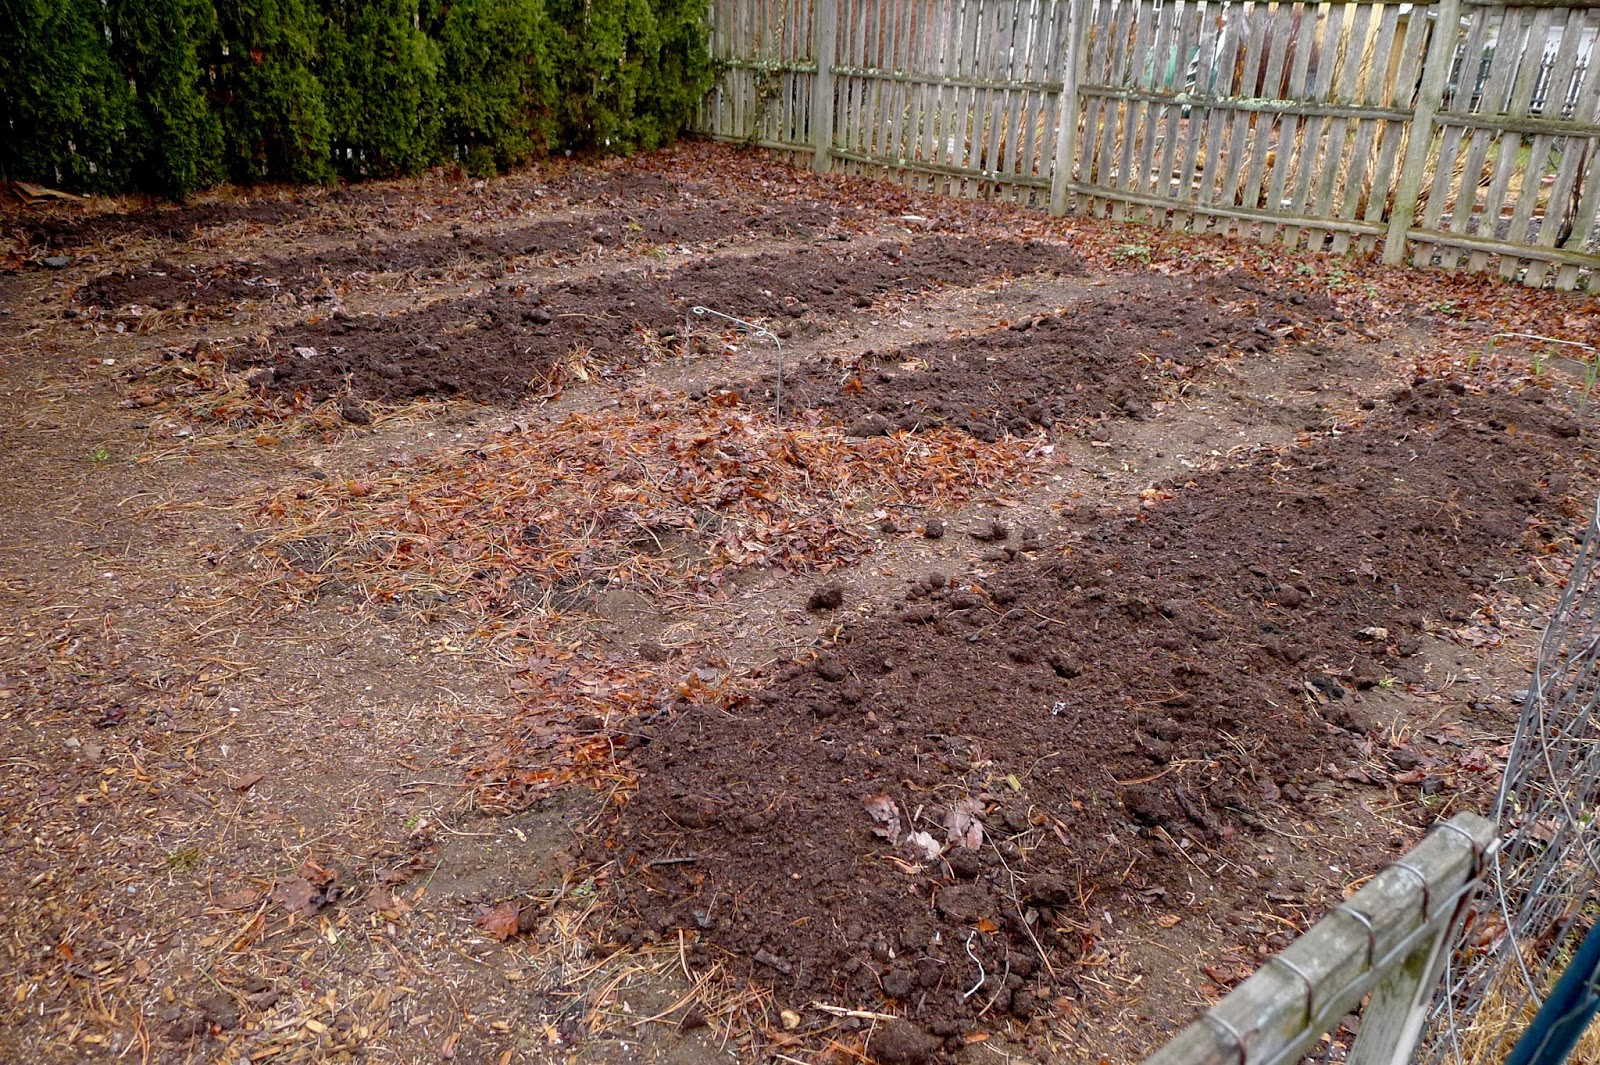 Aged horse manure on vegetable beds